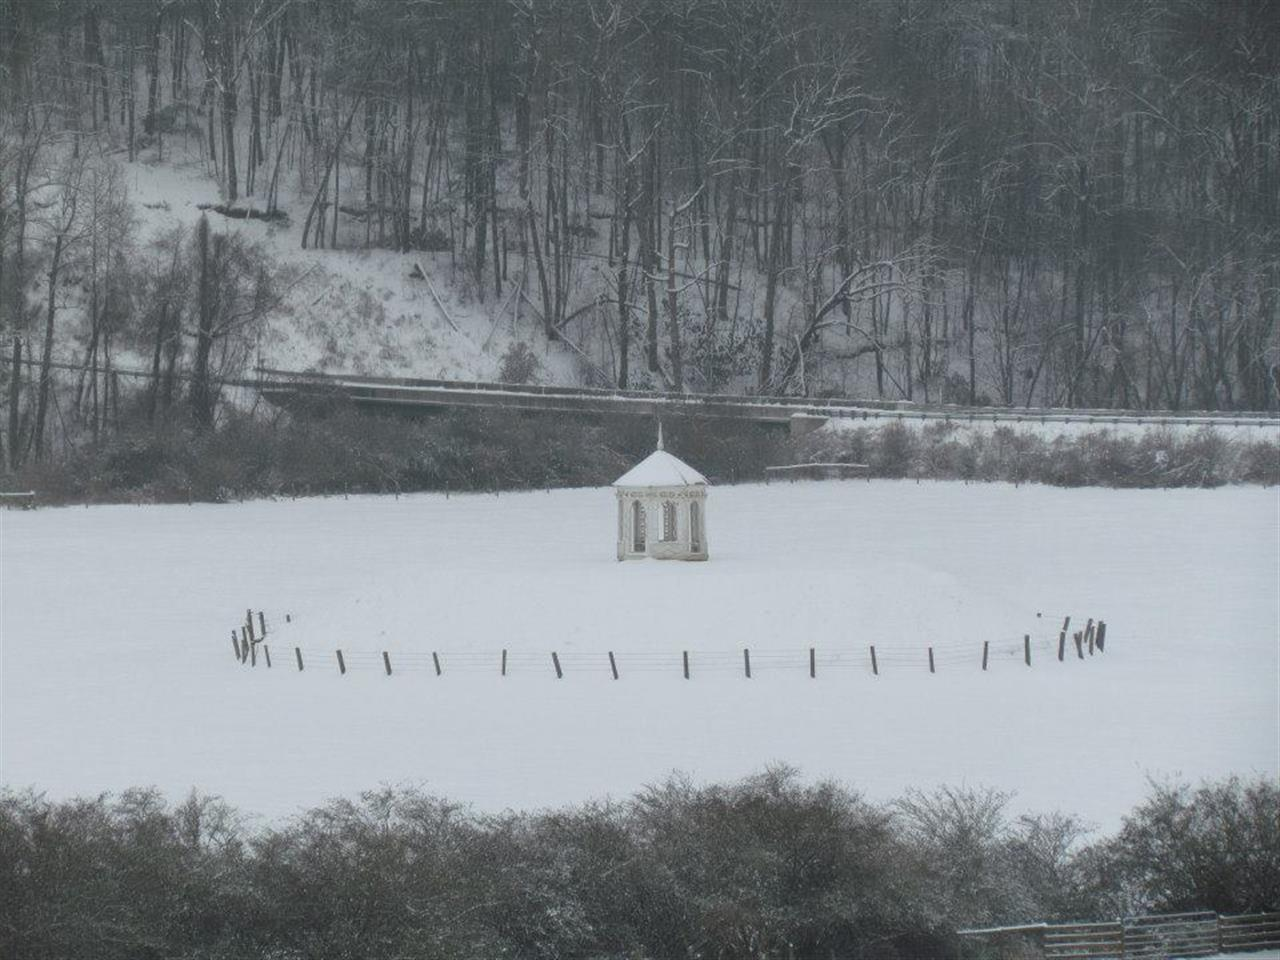 Snowy Day at the Indian Mound in the Nachoochee Valley, Helen, GA